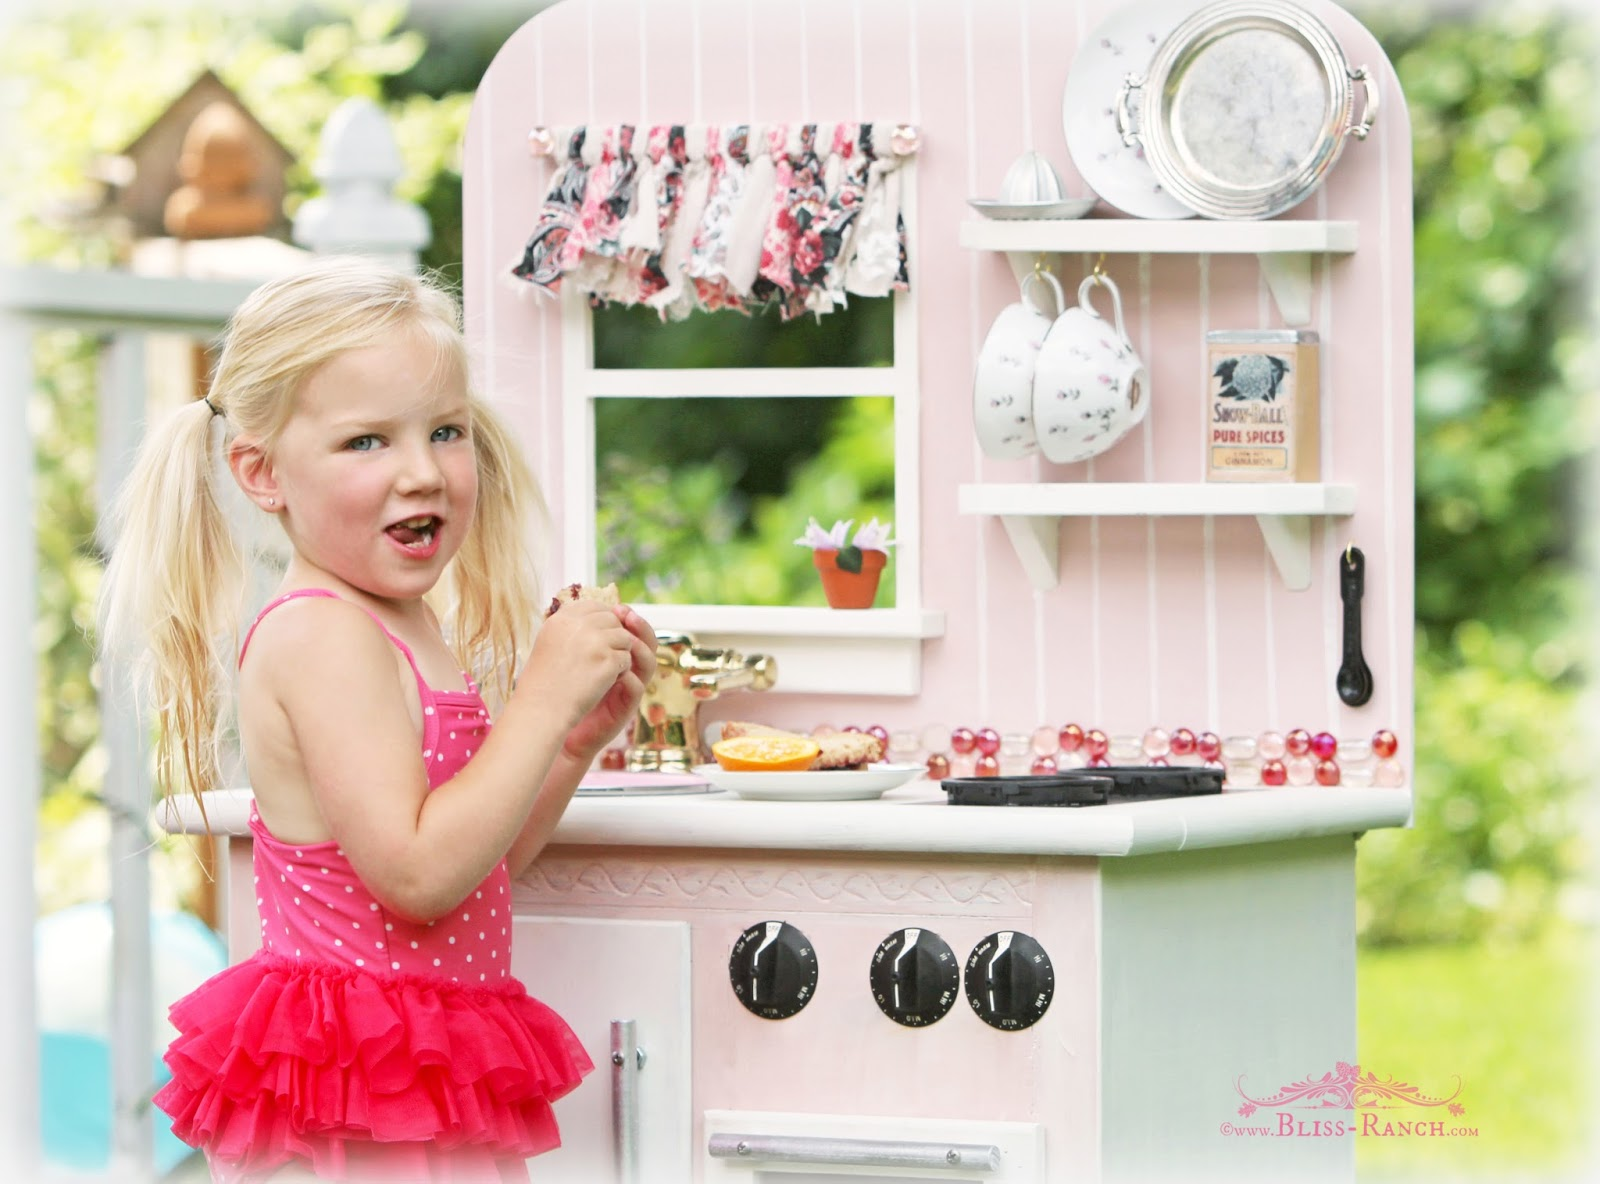 Pink Play Kitchen from Nightstand Bliss-Ranch.com